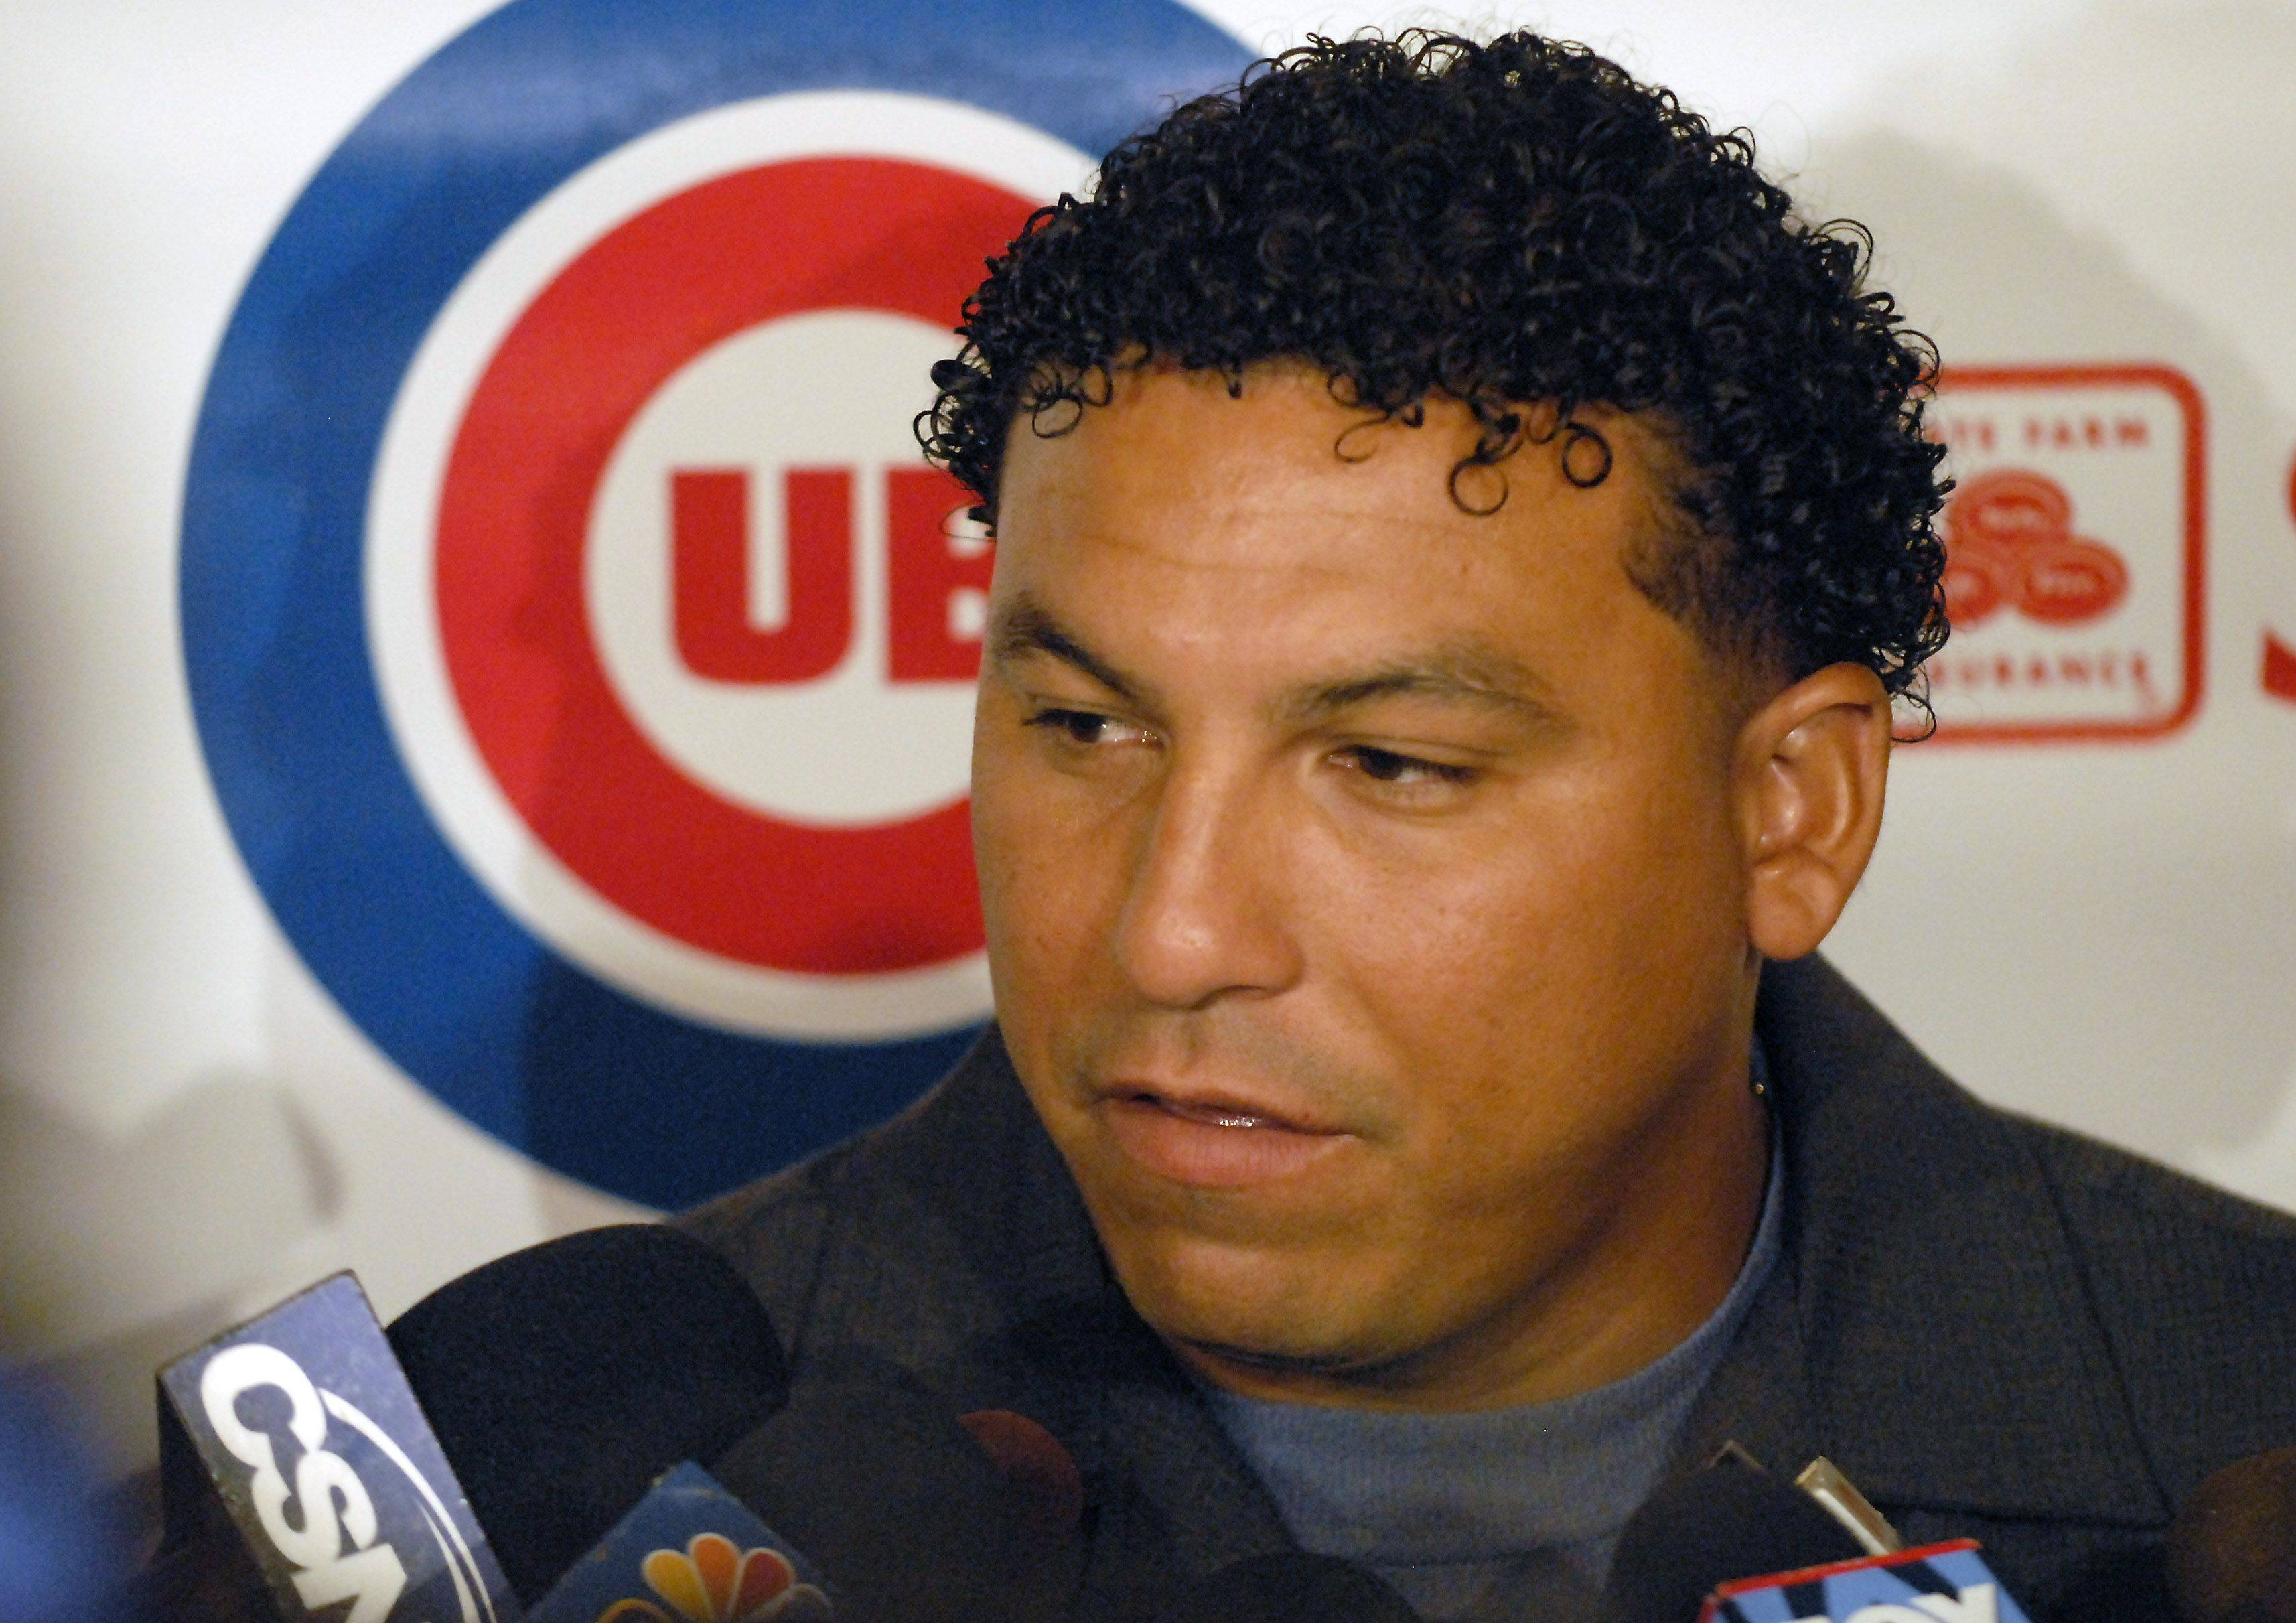 Pitcher Carlos Zambrano talks to the press during the first day of the Cubs convention Friday at the Hilton in Chicago.